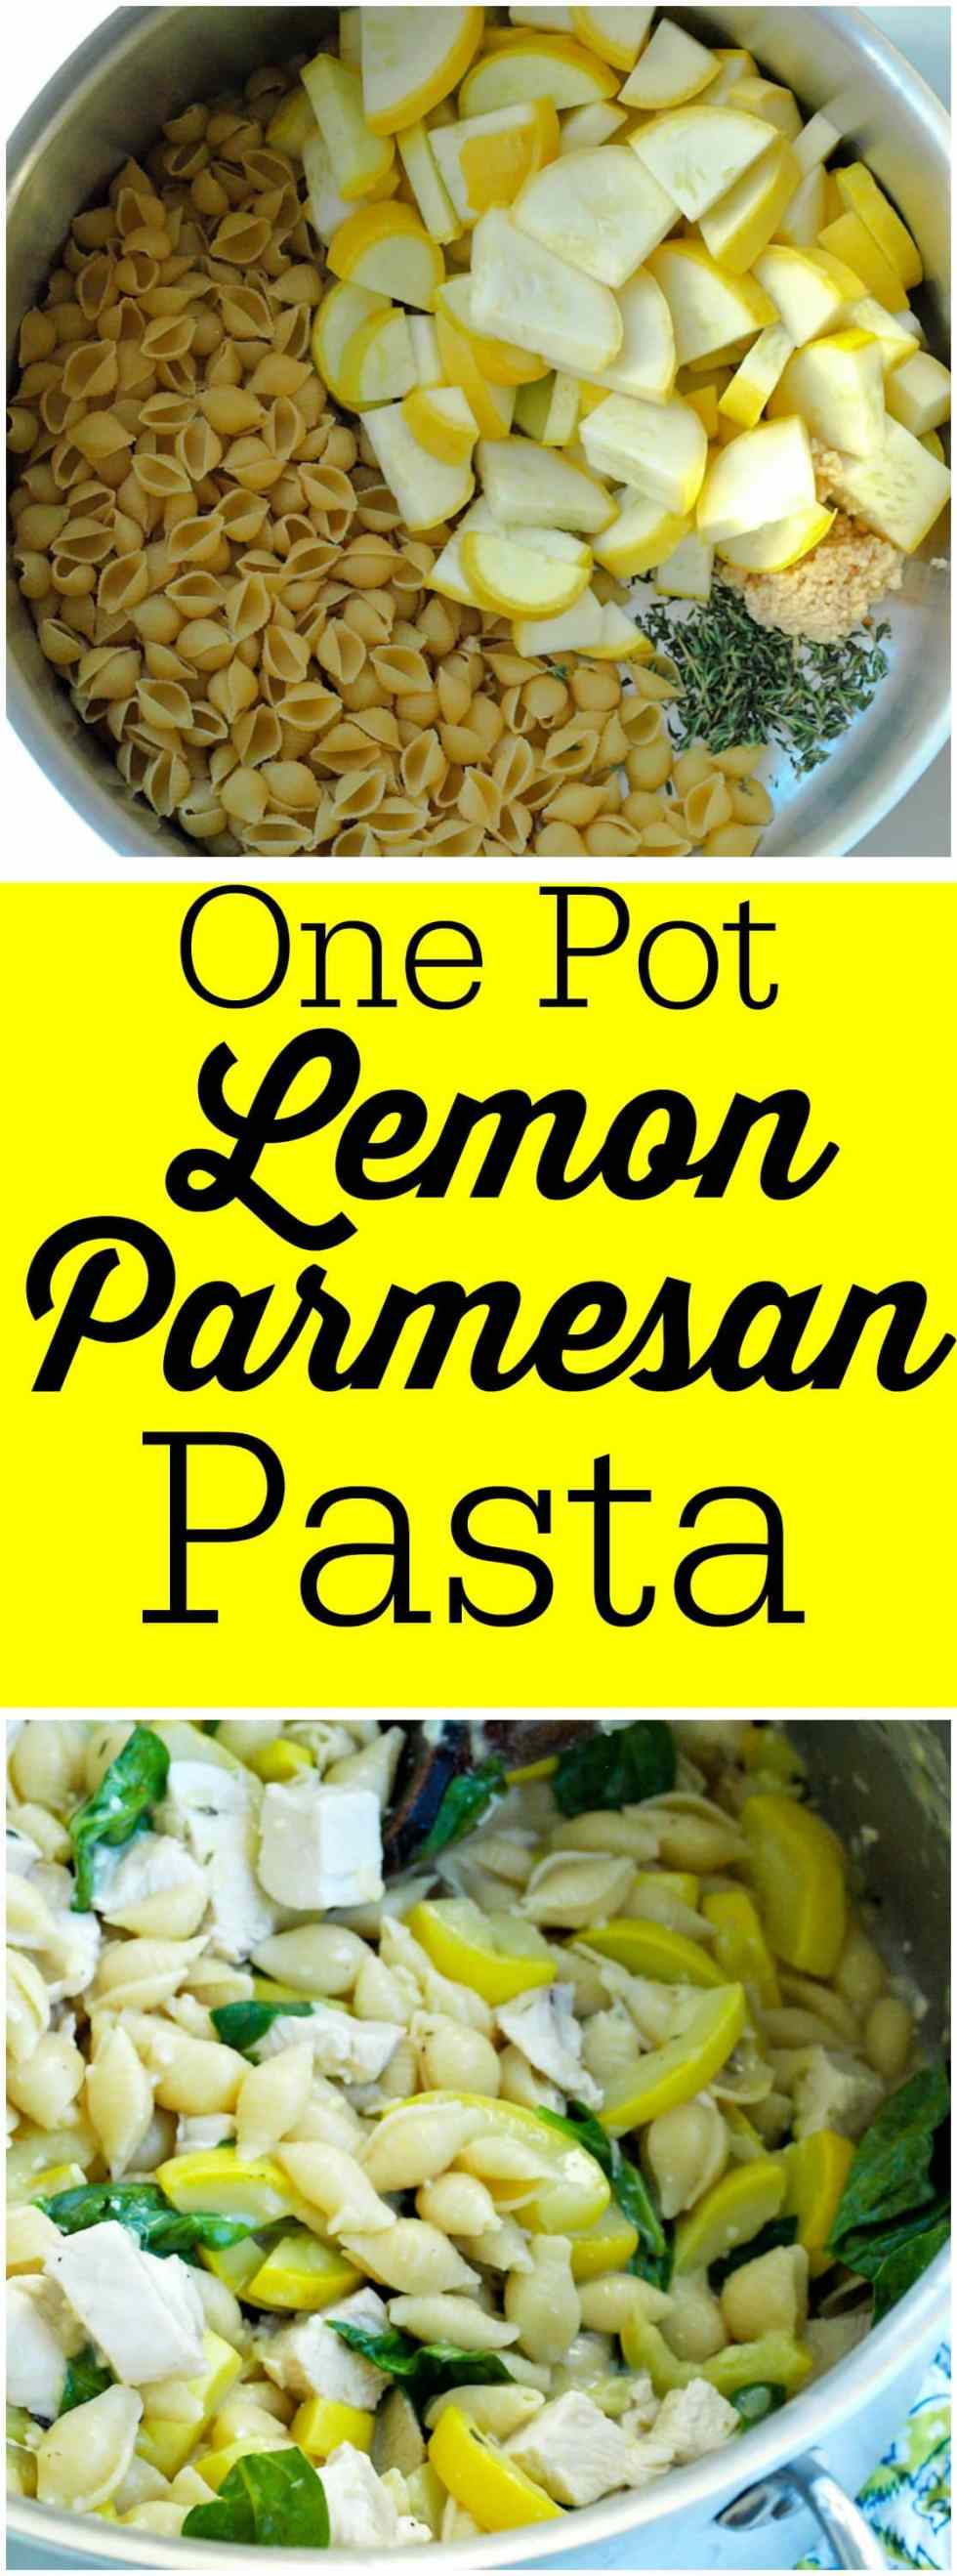 This One Pot Lemon Parmesan Pasta recipe can be on your dinner table in less than 20 minutes! Easy, clean eating recipe.